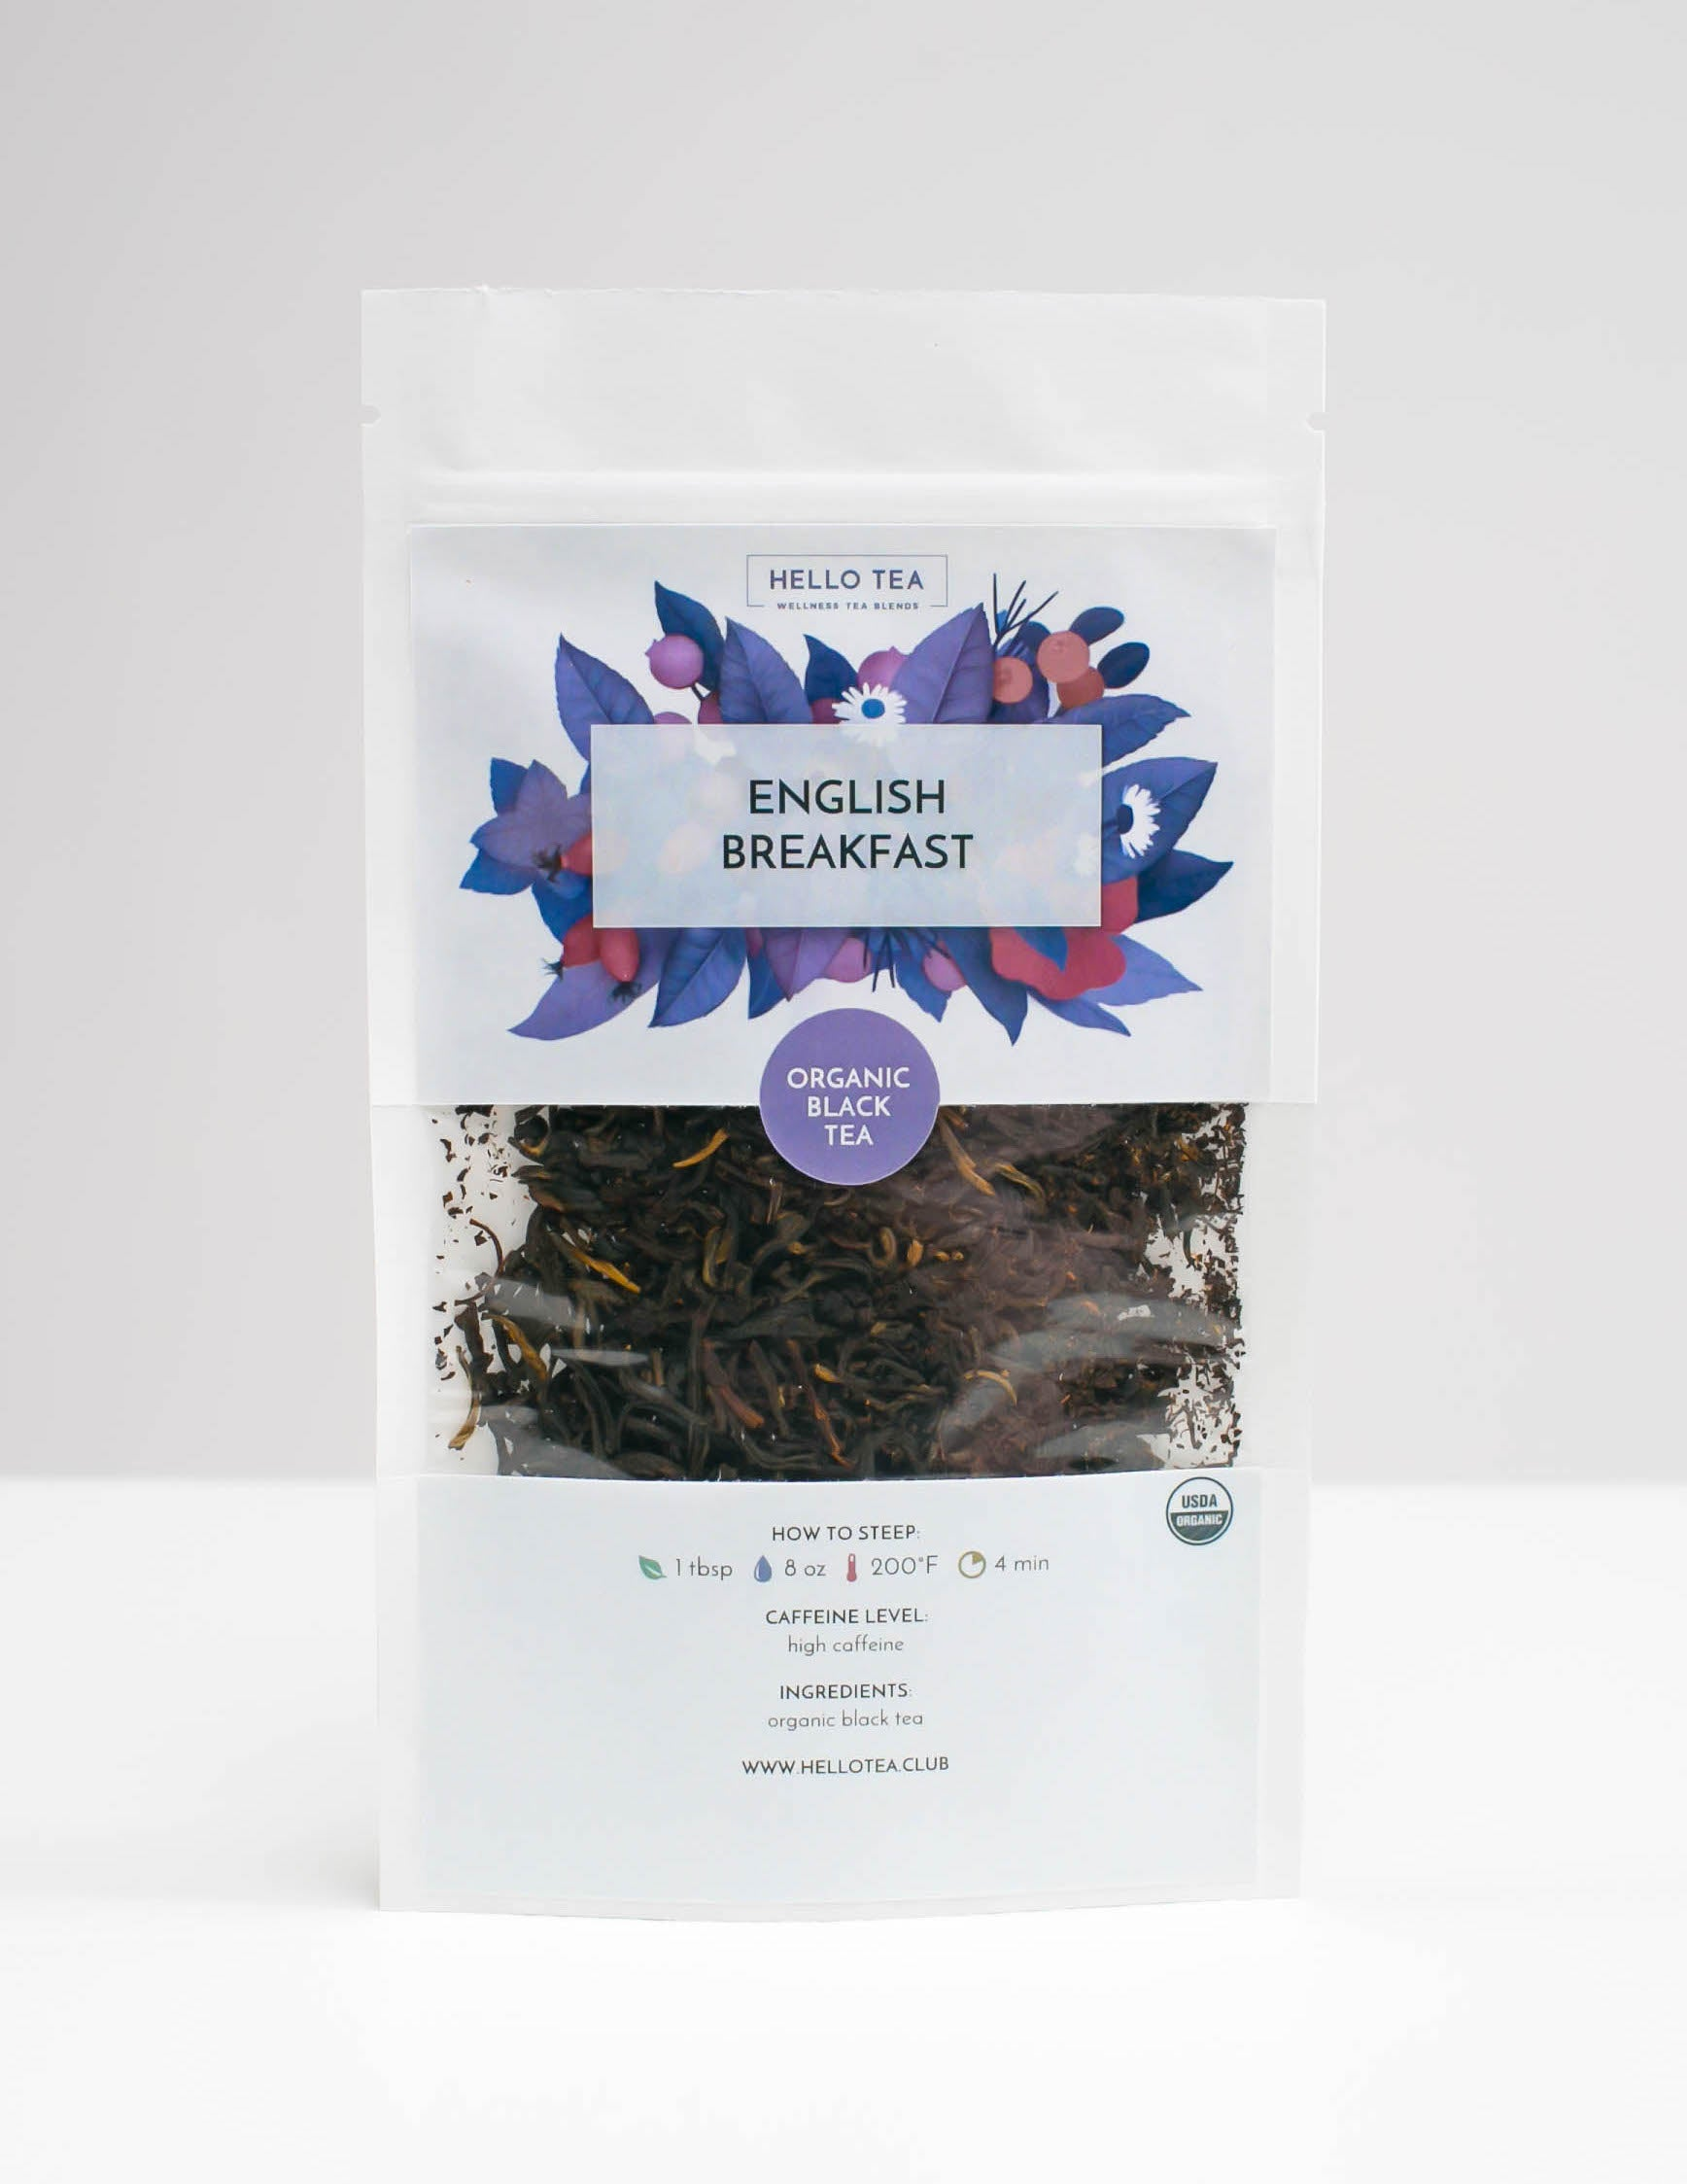 Stand up pouch of Hello Tea English Breakfast Loose Leaf Tea